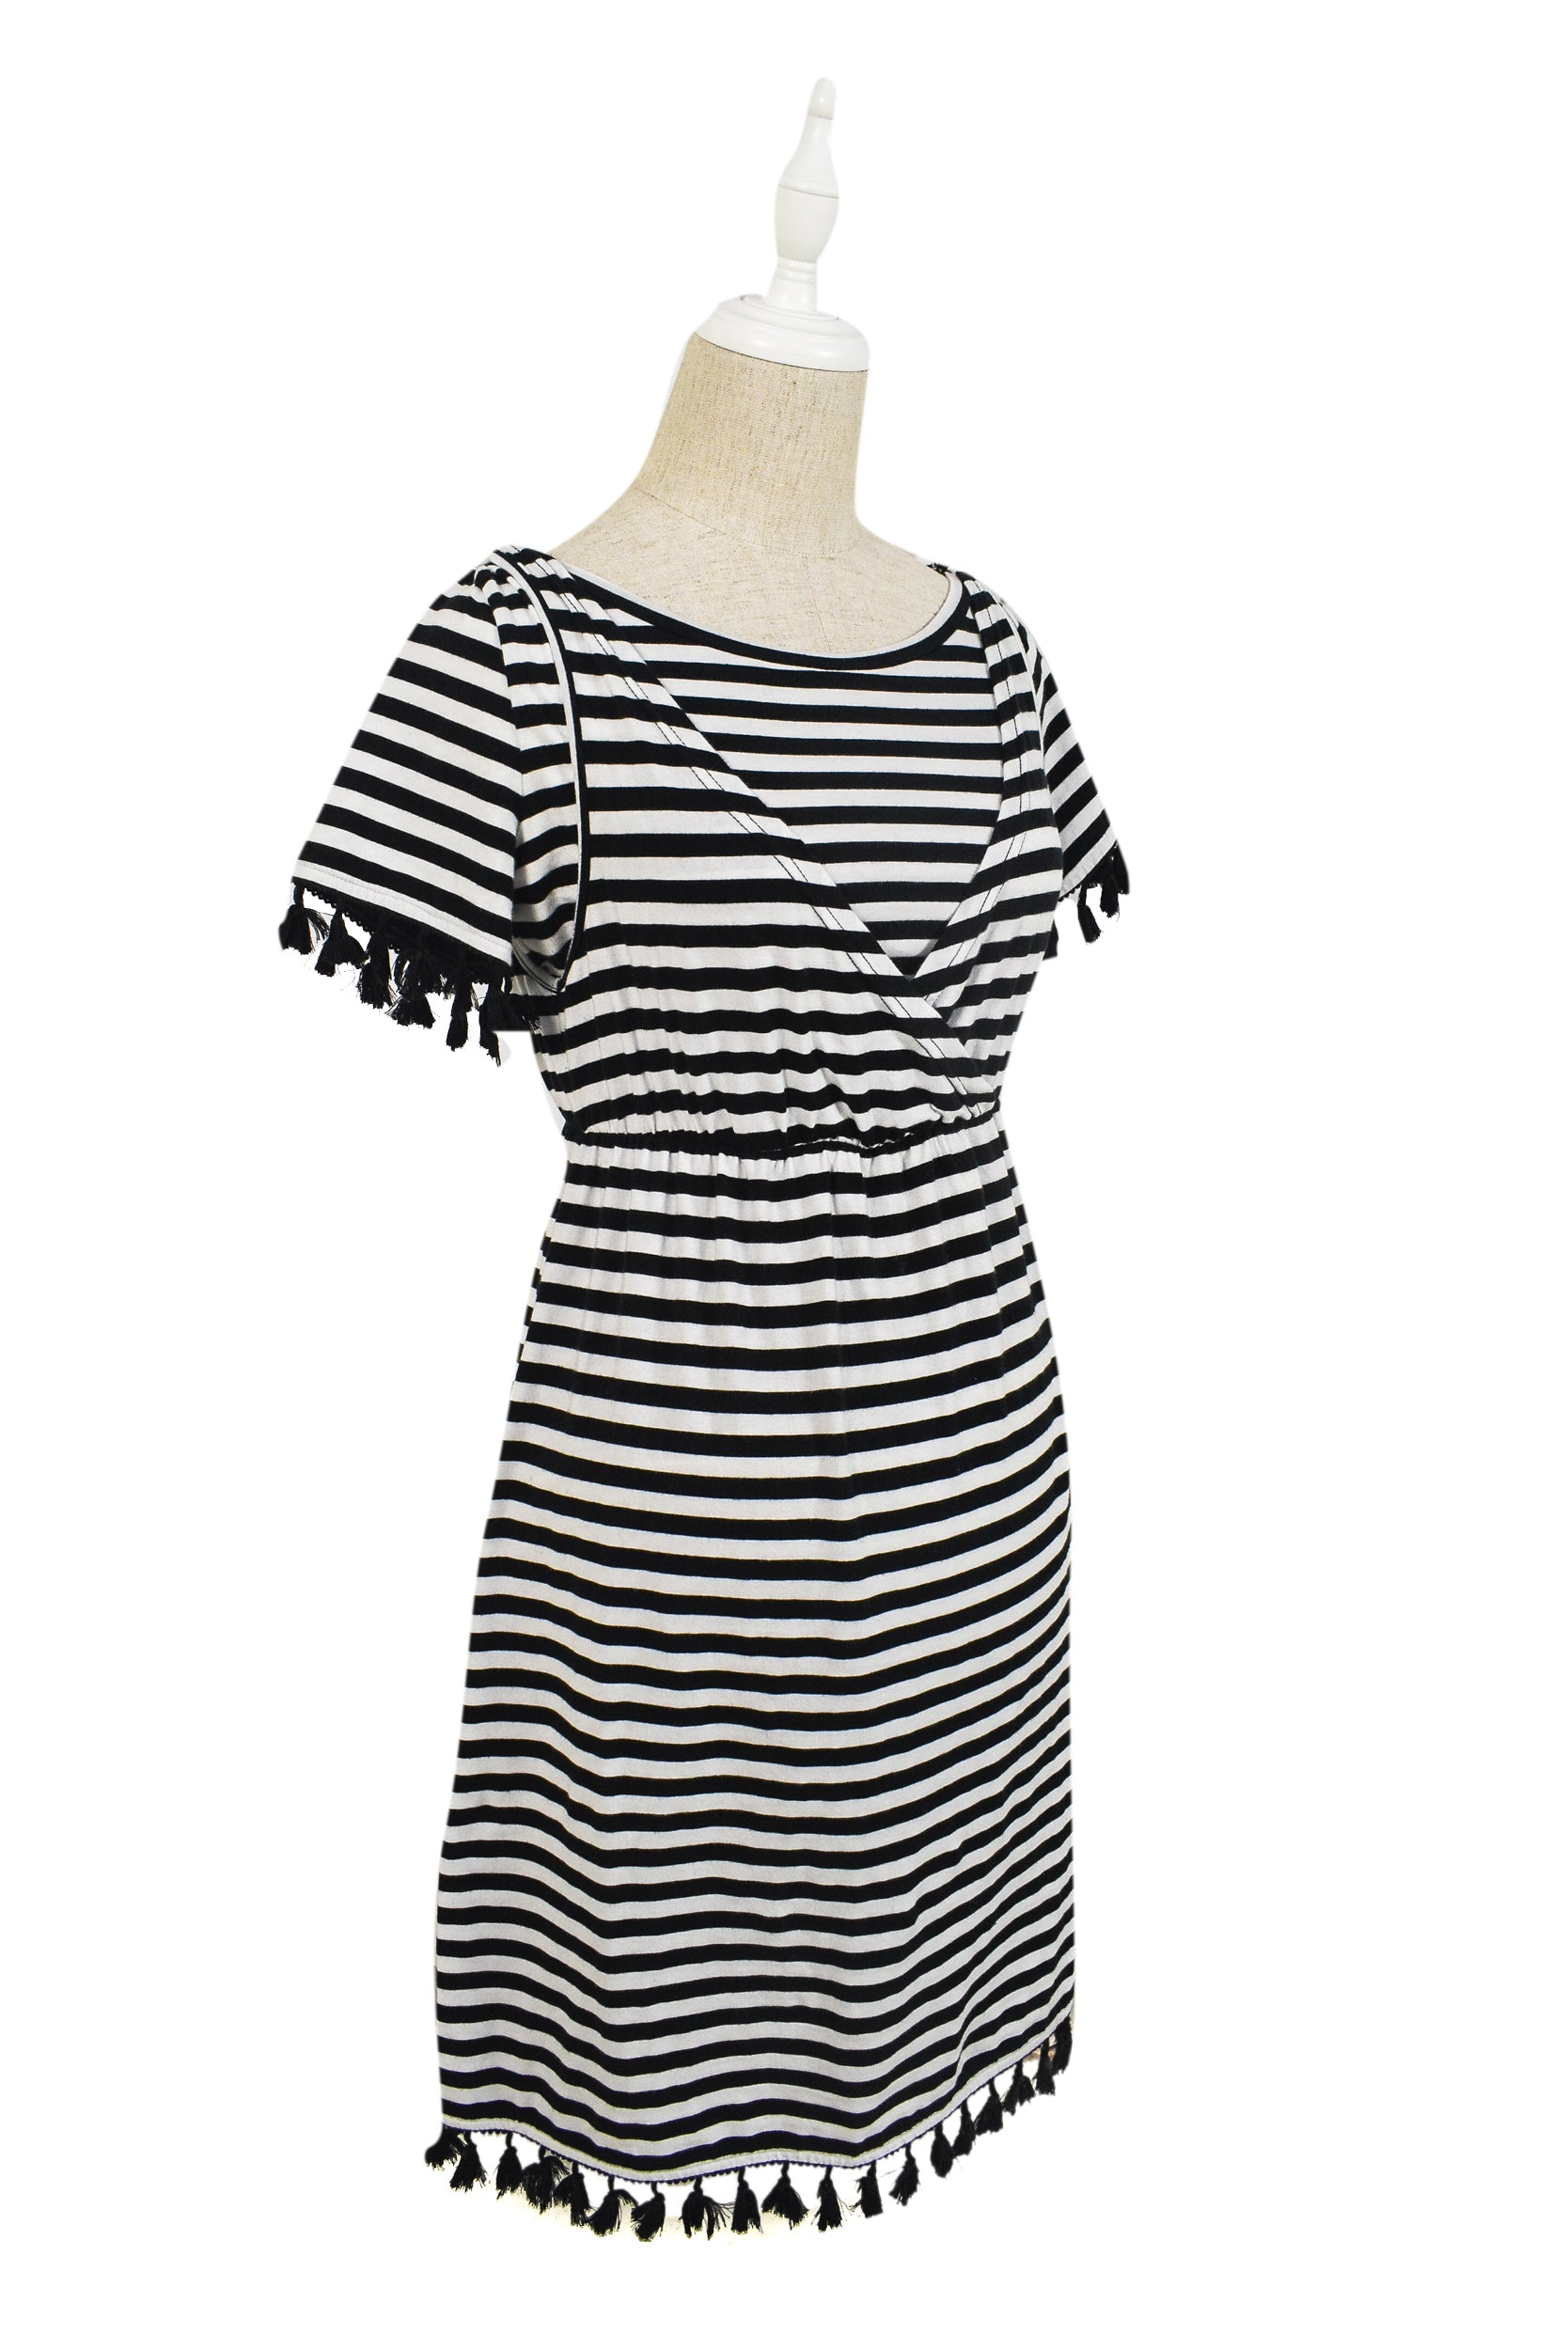 Maternity Short Sleeve Dress S at Retykle